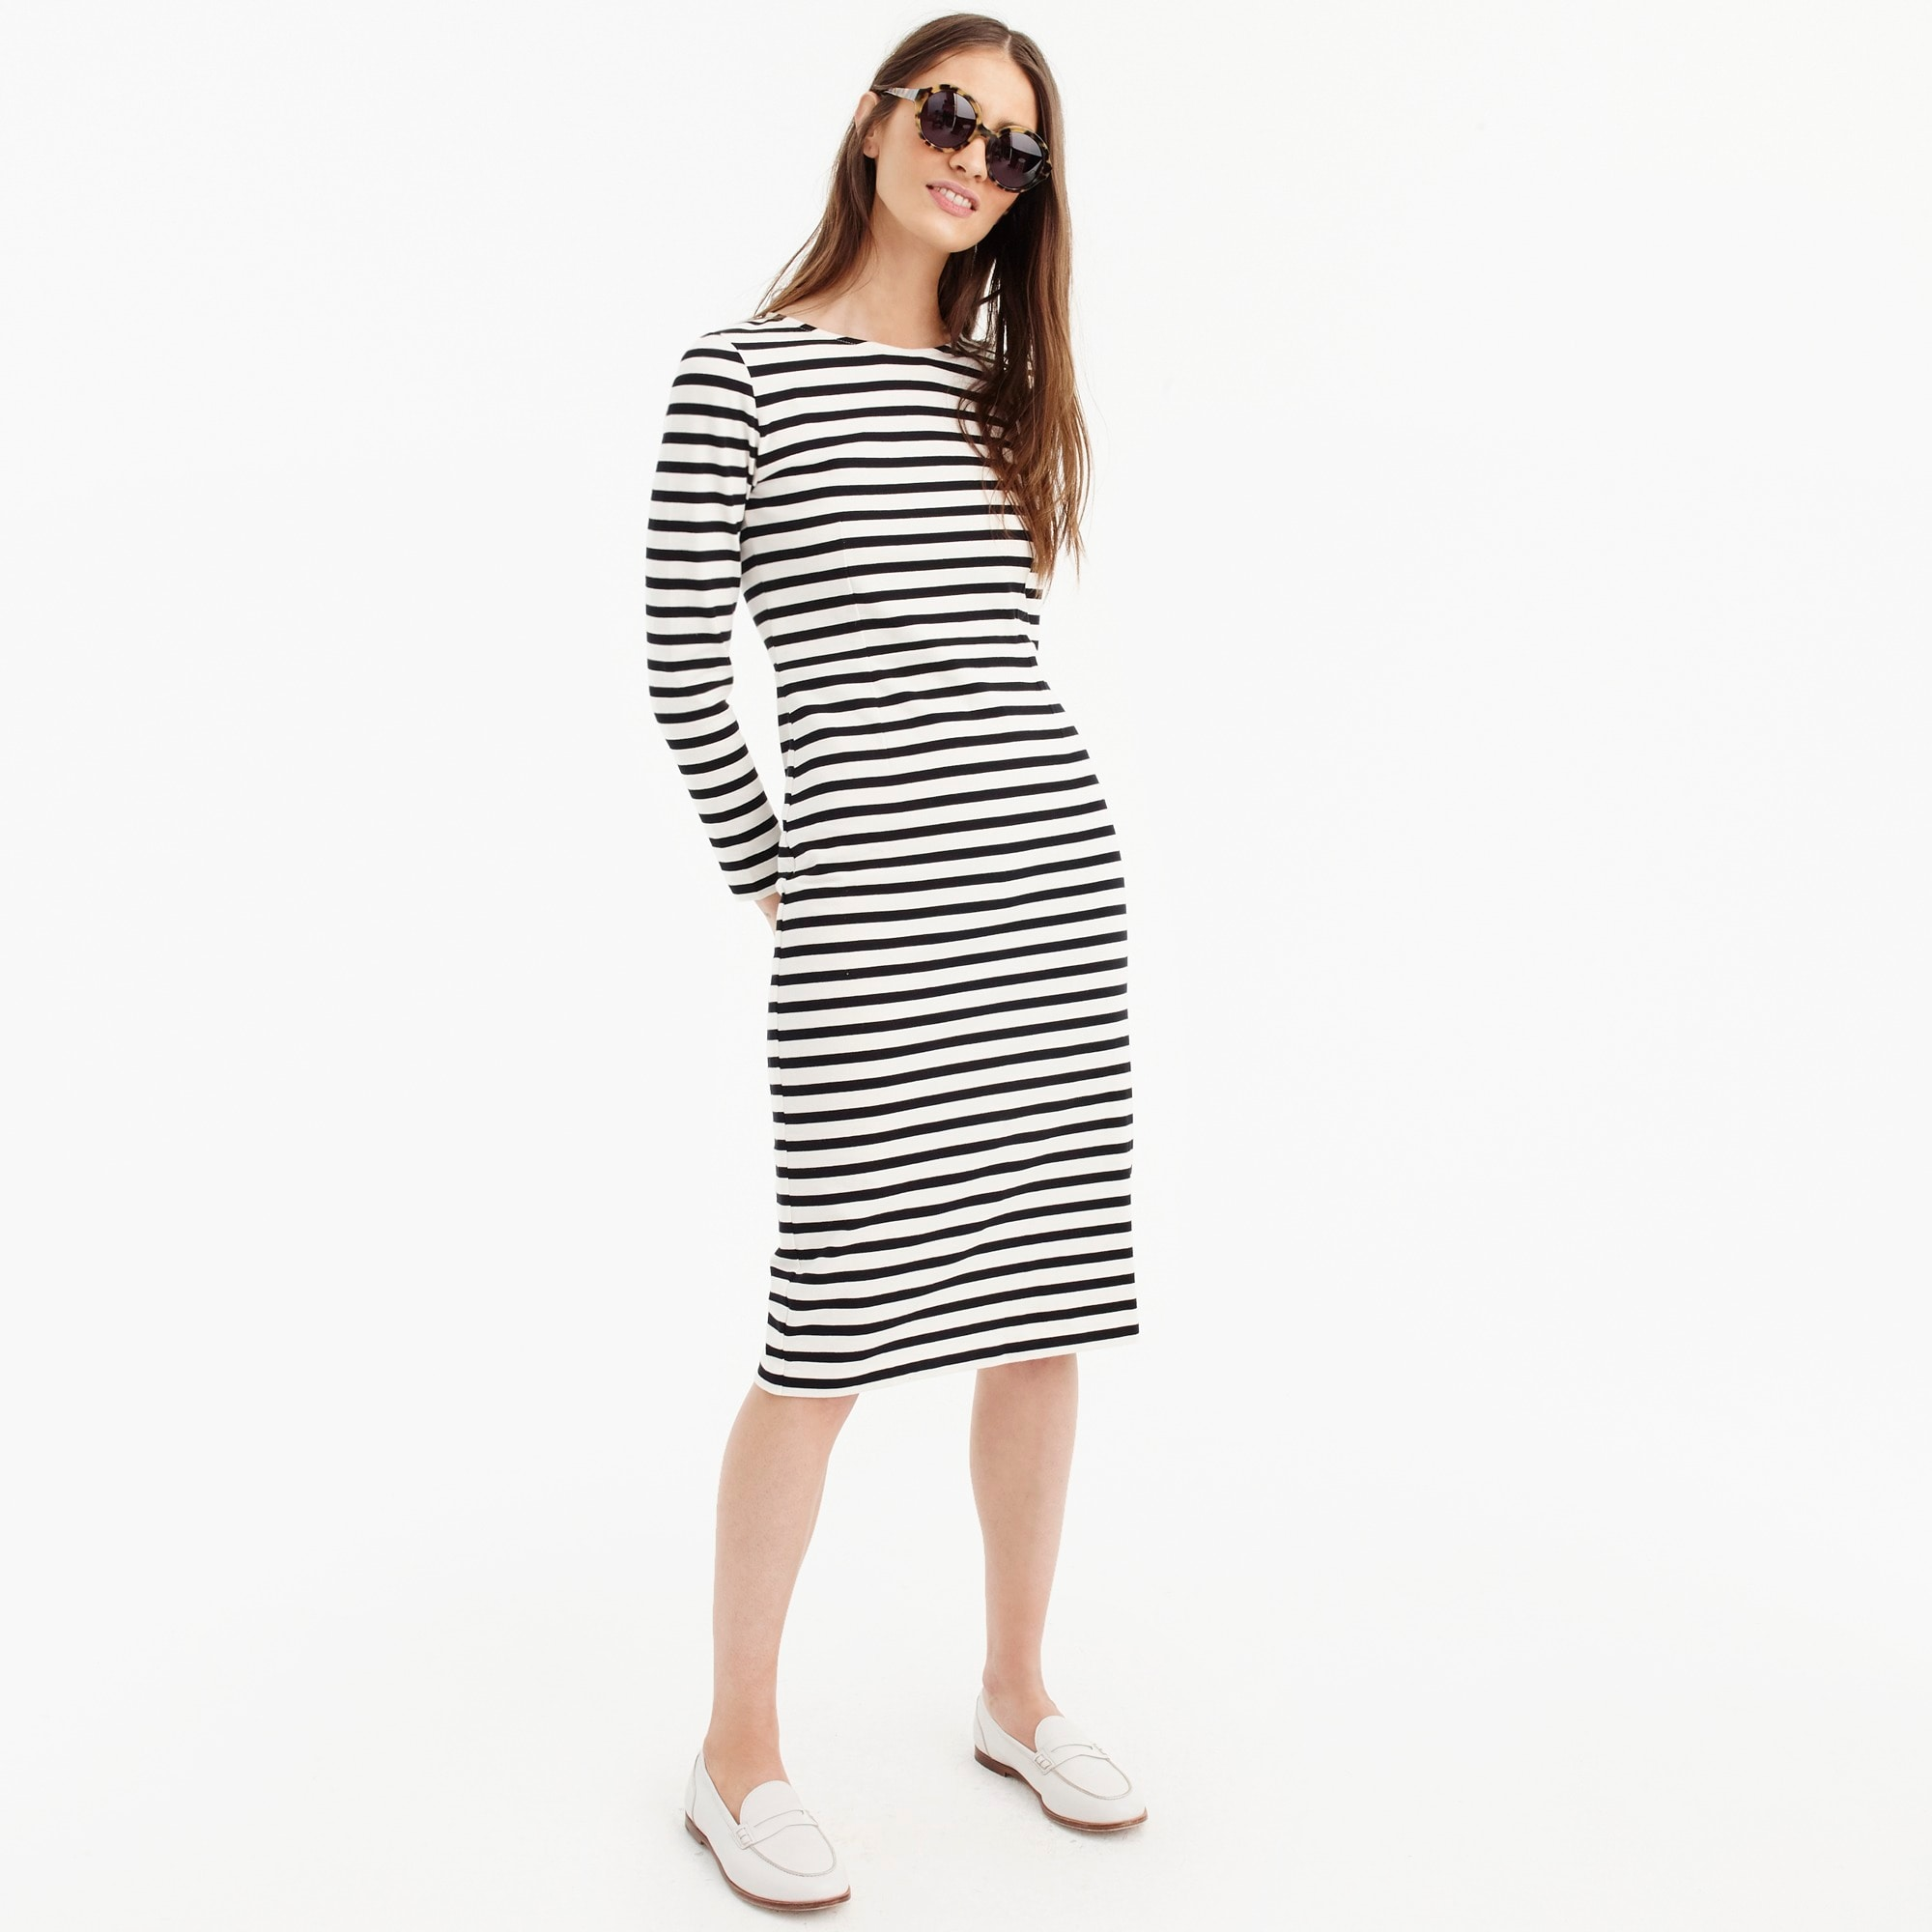 Long-sleeve striped dress women dresses c